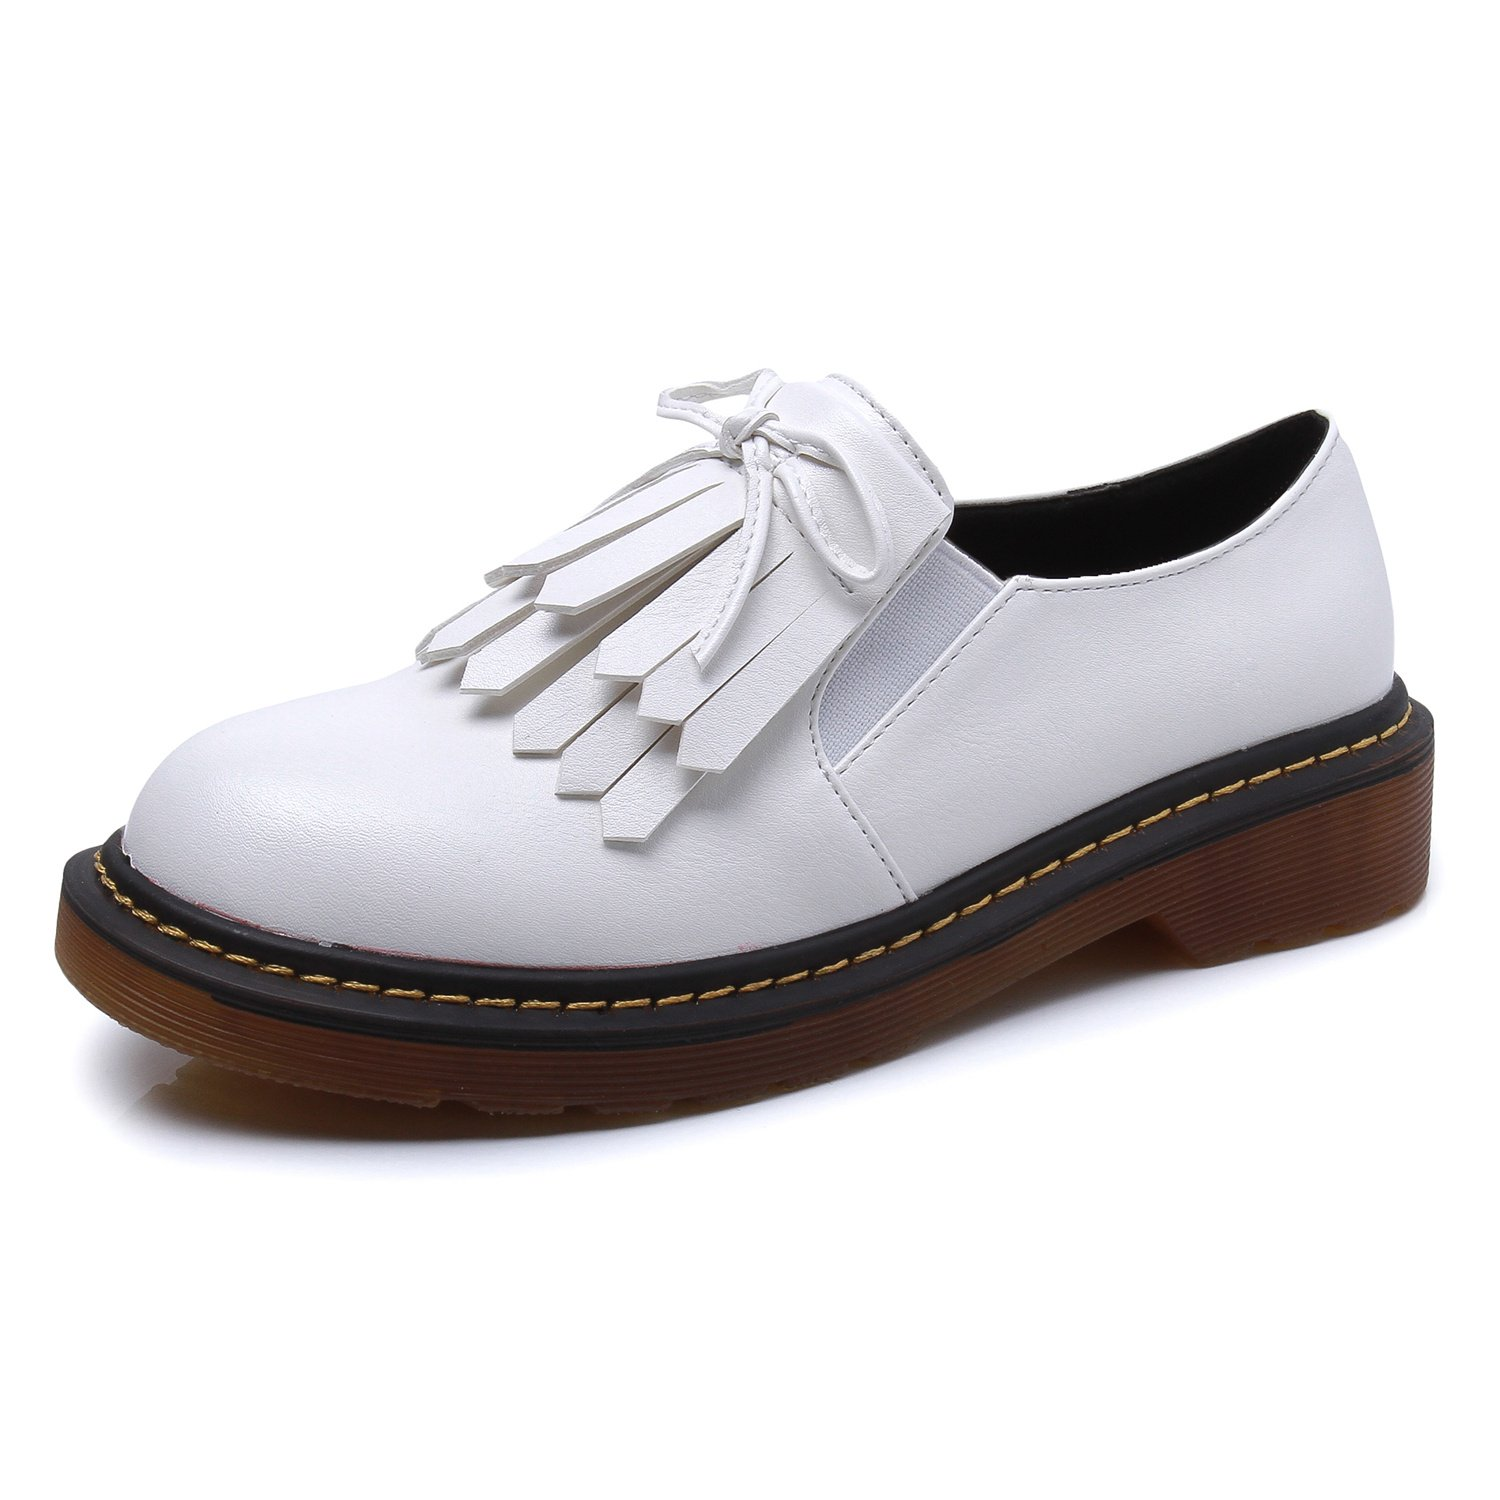 Smilun Girl¡¯s Derby Classic Lace-up Shoes Smooth Leather Flats Office Business Dress Shoes for Girl White Size 6 B(M) US